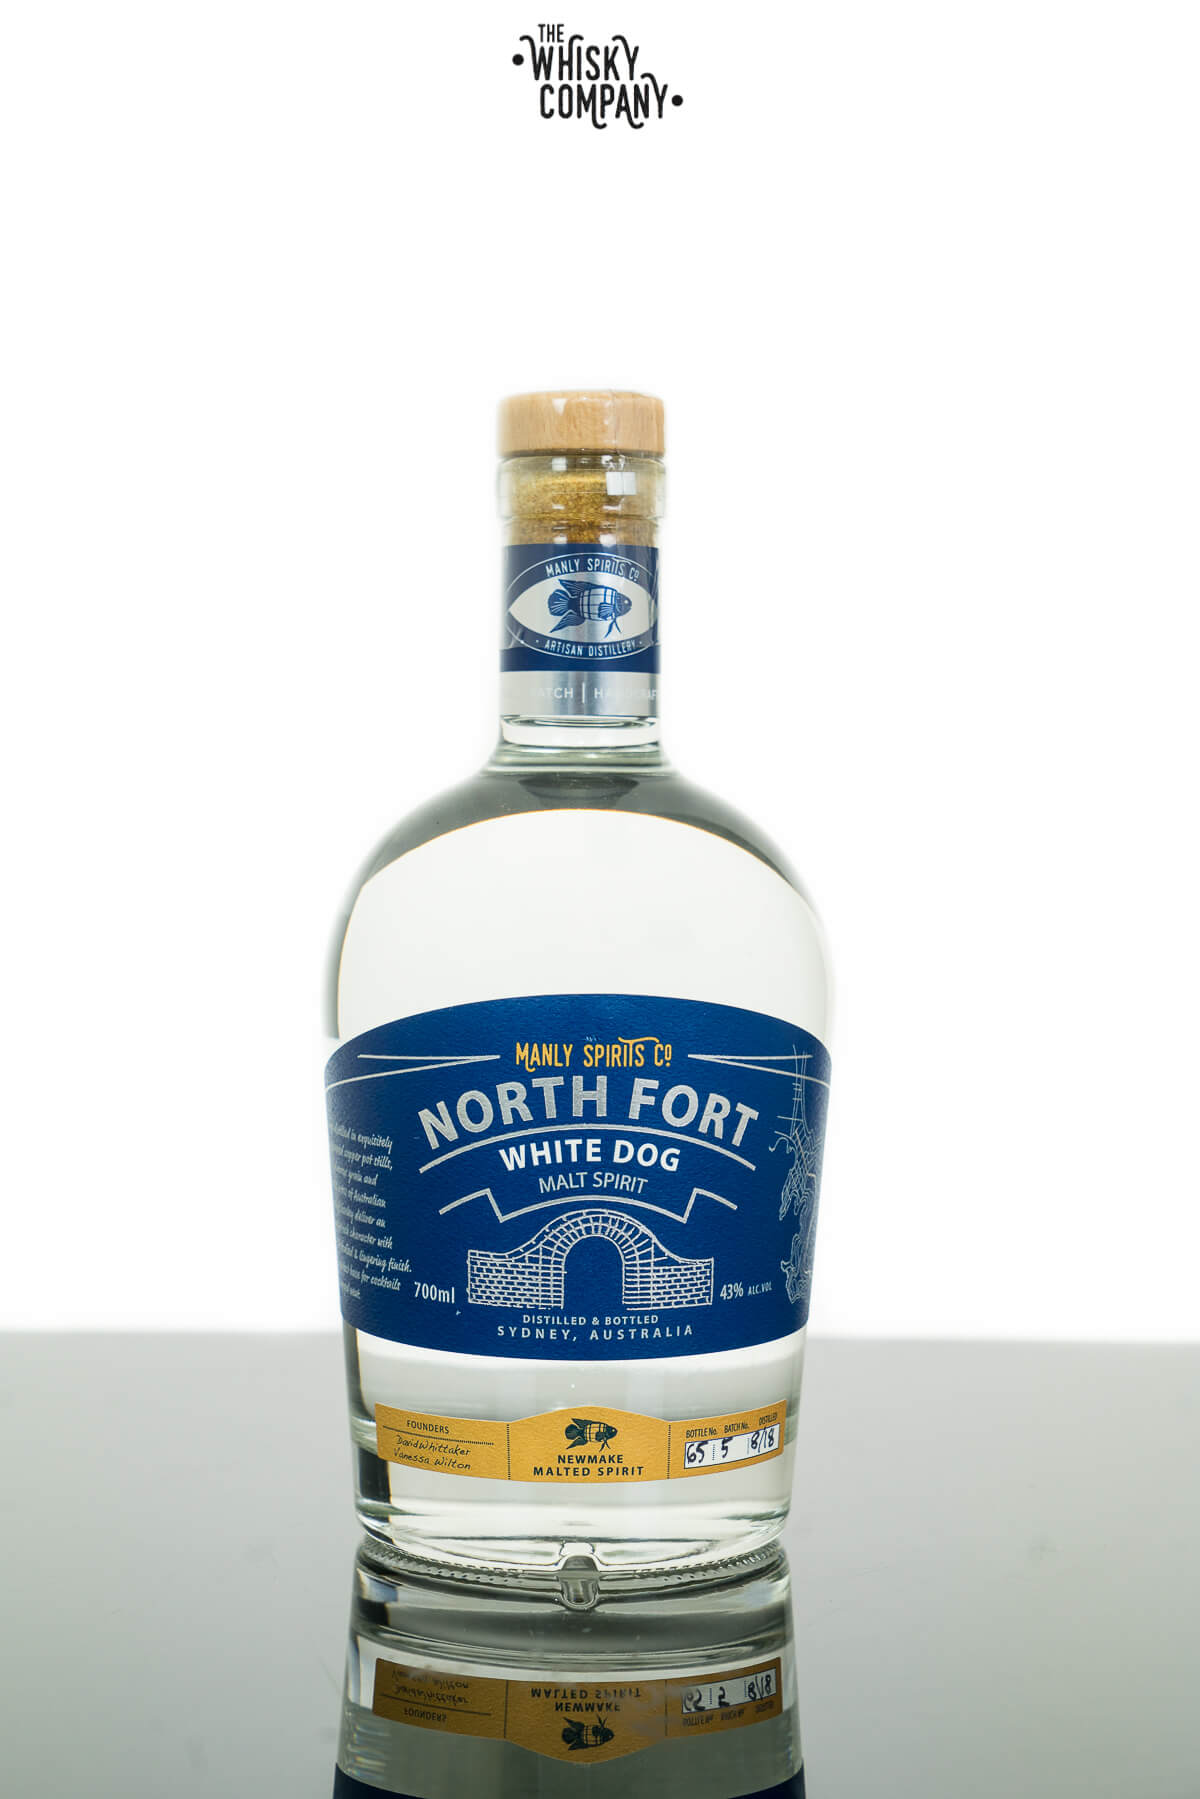 Manly Spirits Co. North Fort Whisky (White Dog) (700ml)